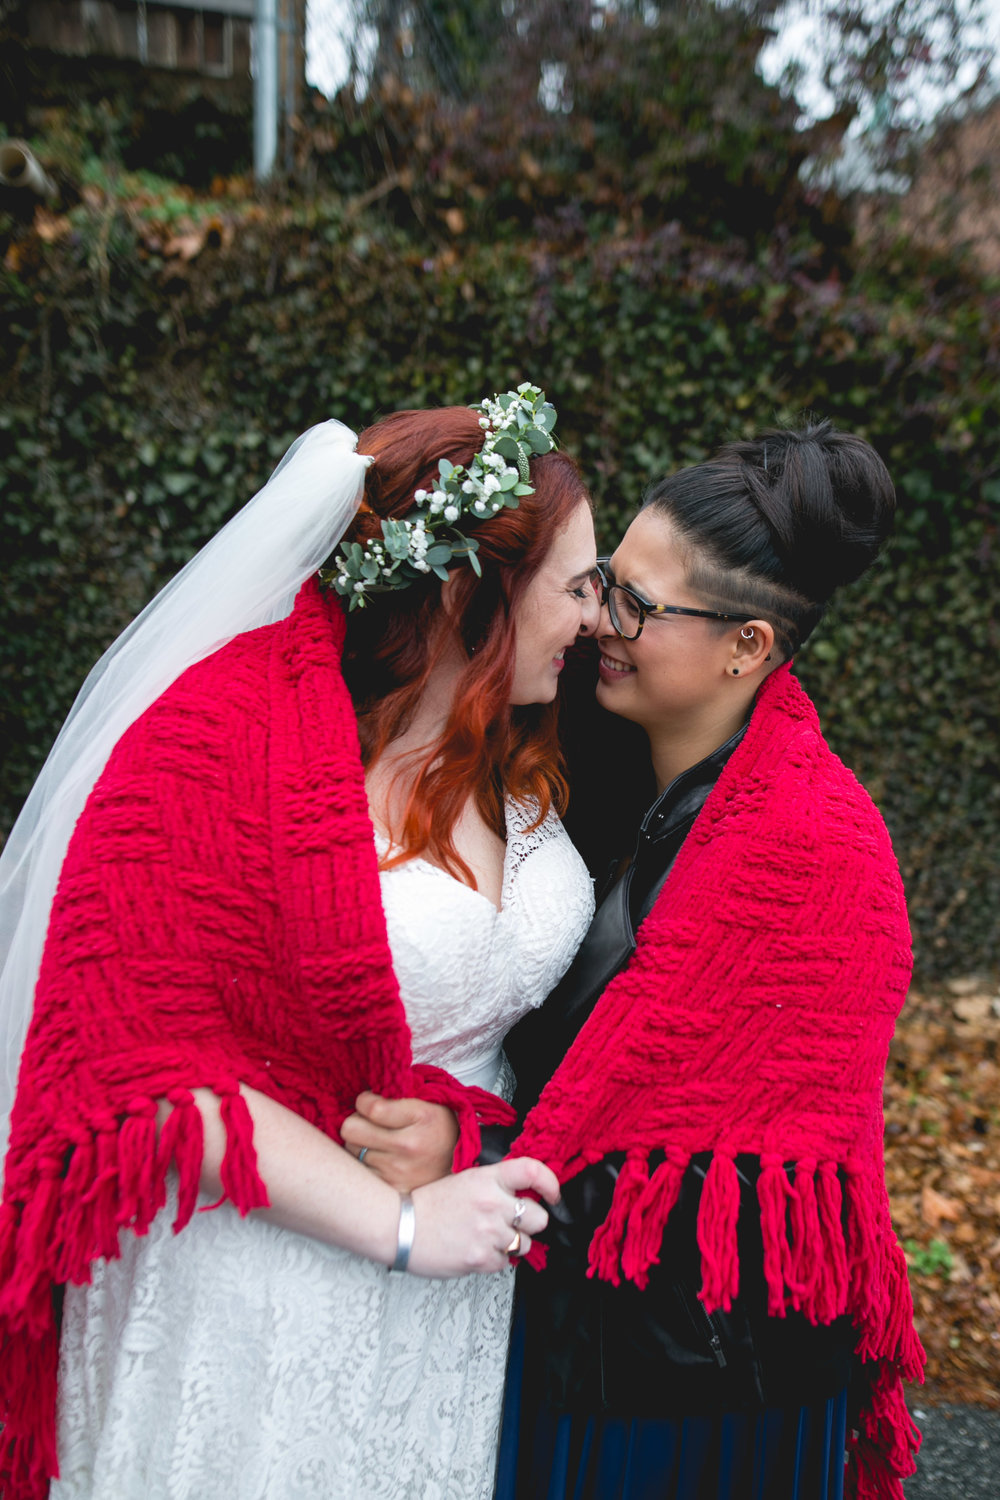 LGBTQ Philadelphia Wedding by Swiger Photography the Lesbian photographer 18